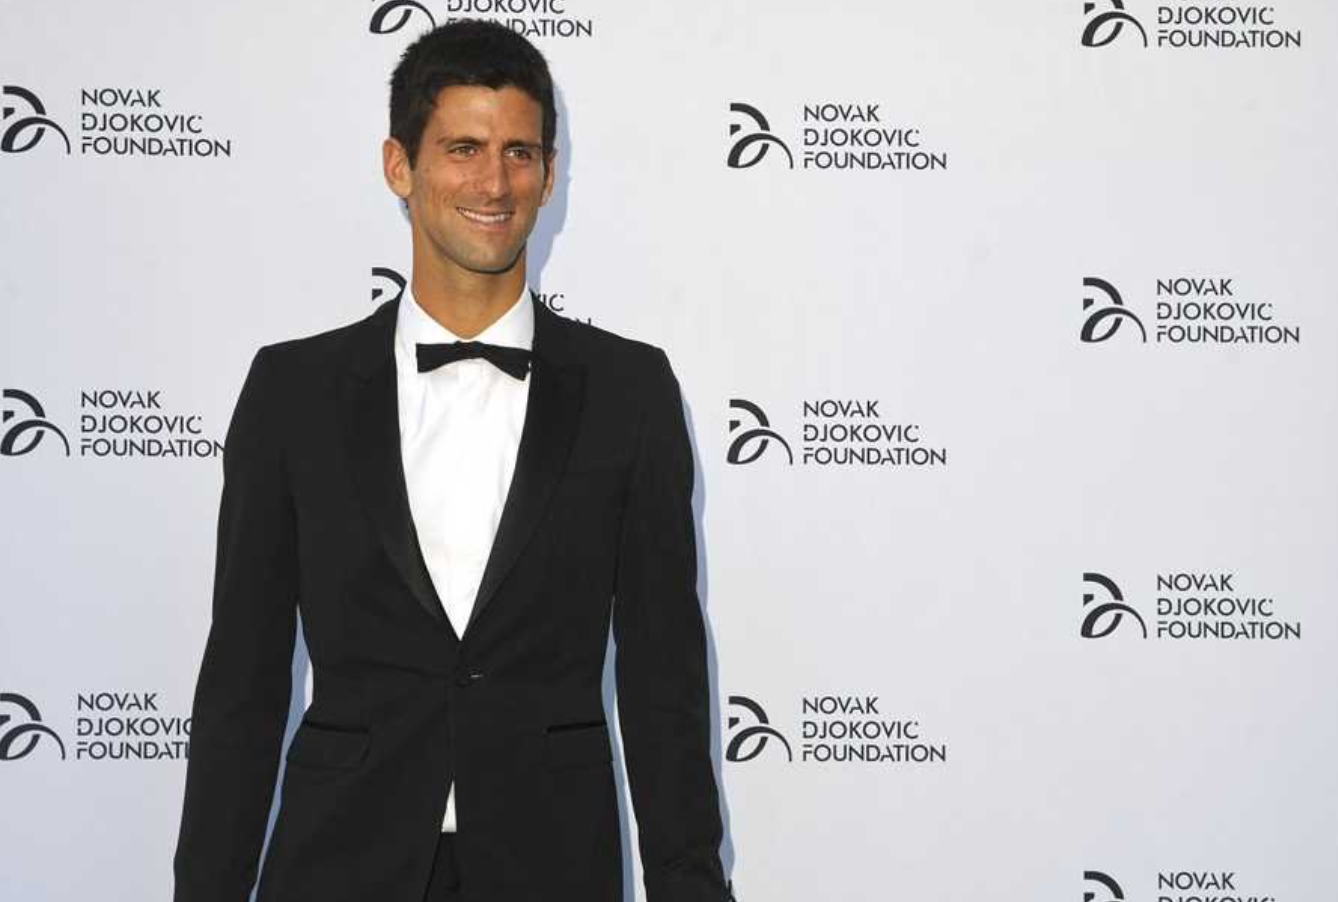 Djokovic-fondation